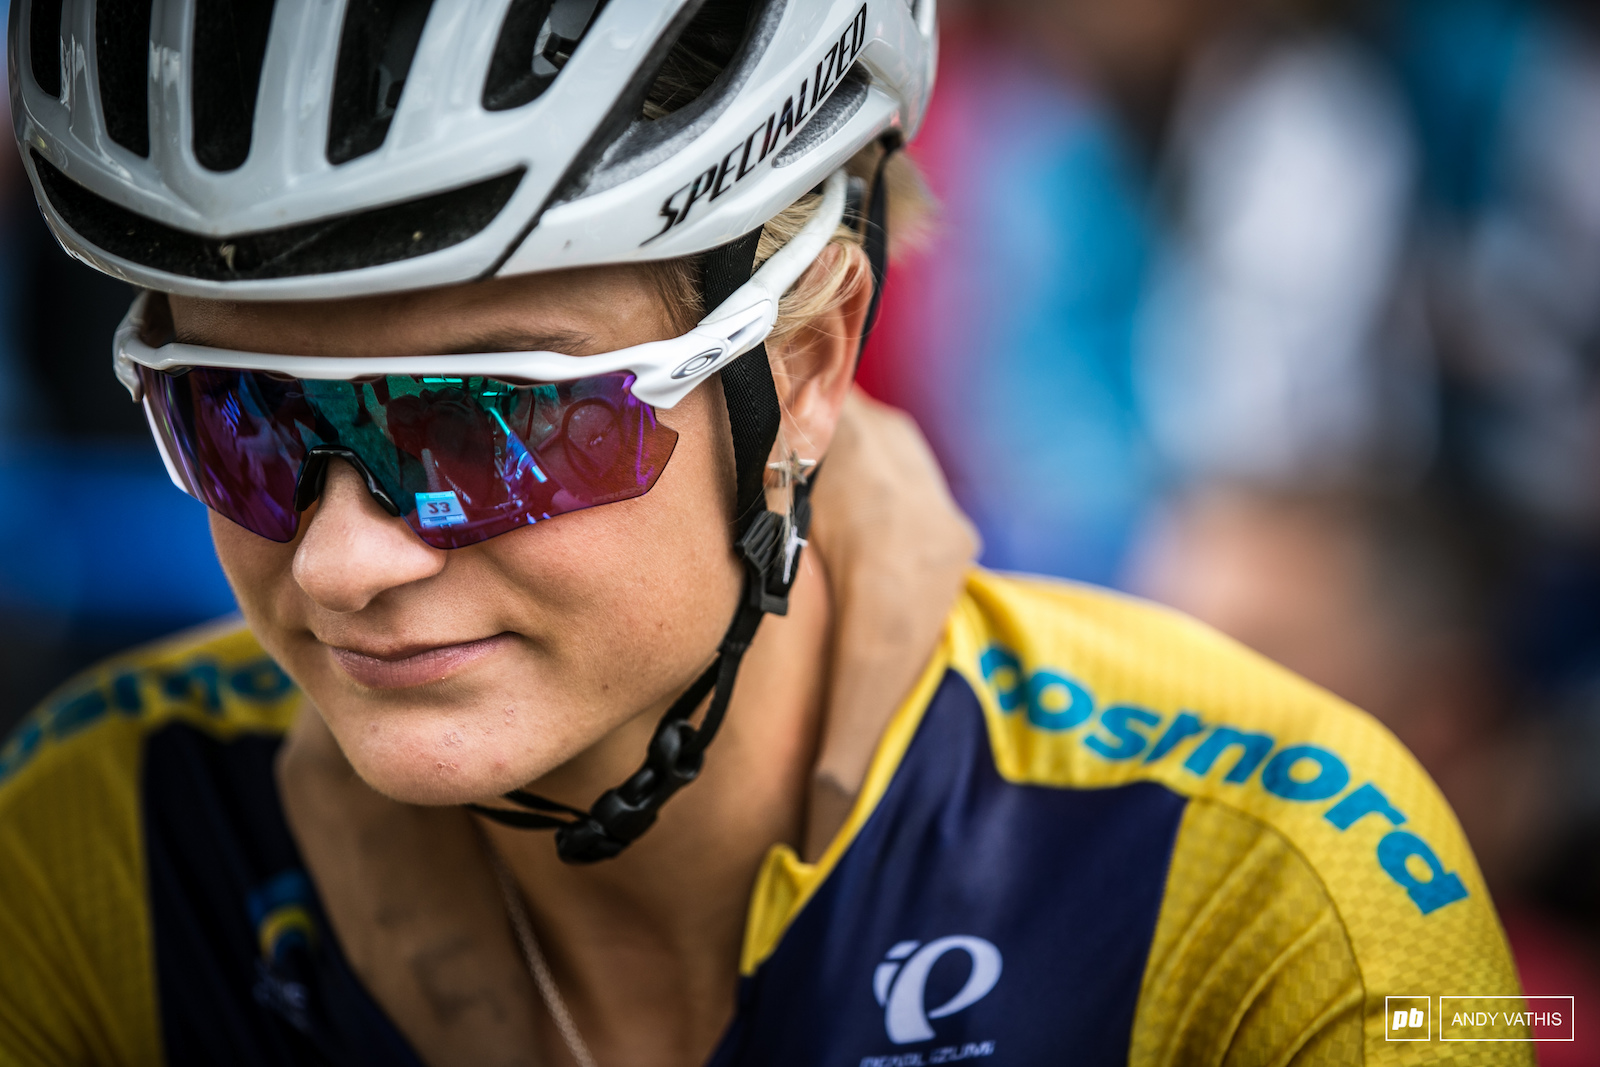 Jenny Rissveds did not have the repeat performance she thought she d have after her historic win in Lenzerheide.